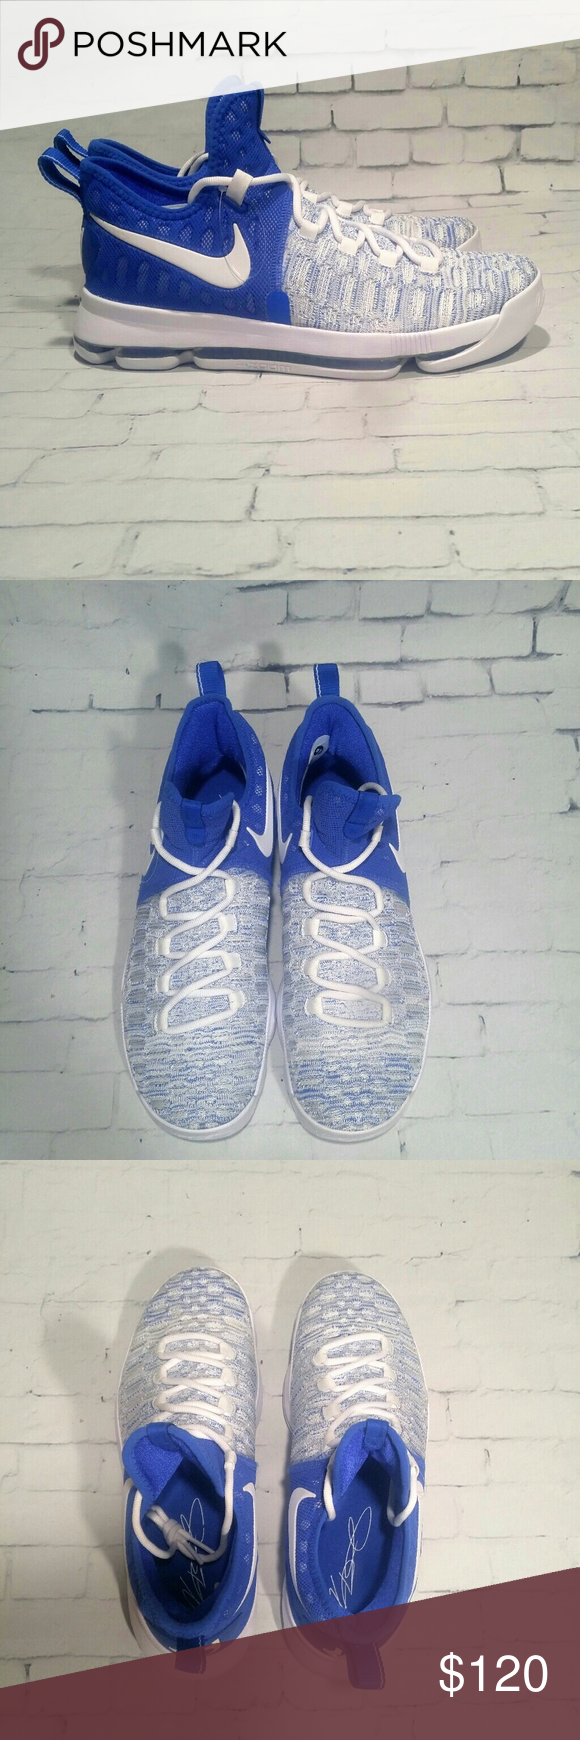 5052c4d38df5 New Nike KD 9 Home II 2 843392-411Durant Shoes You are buying Brand New